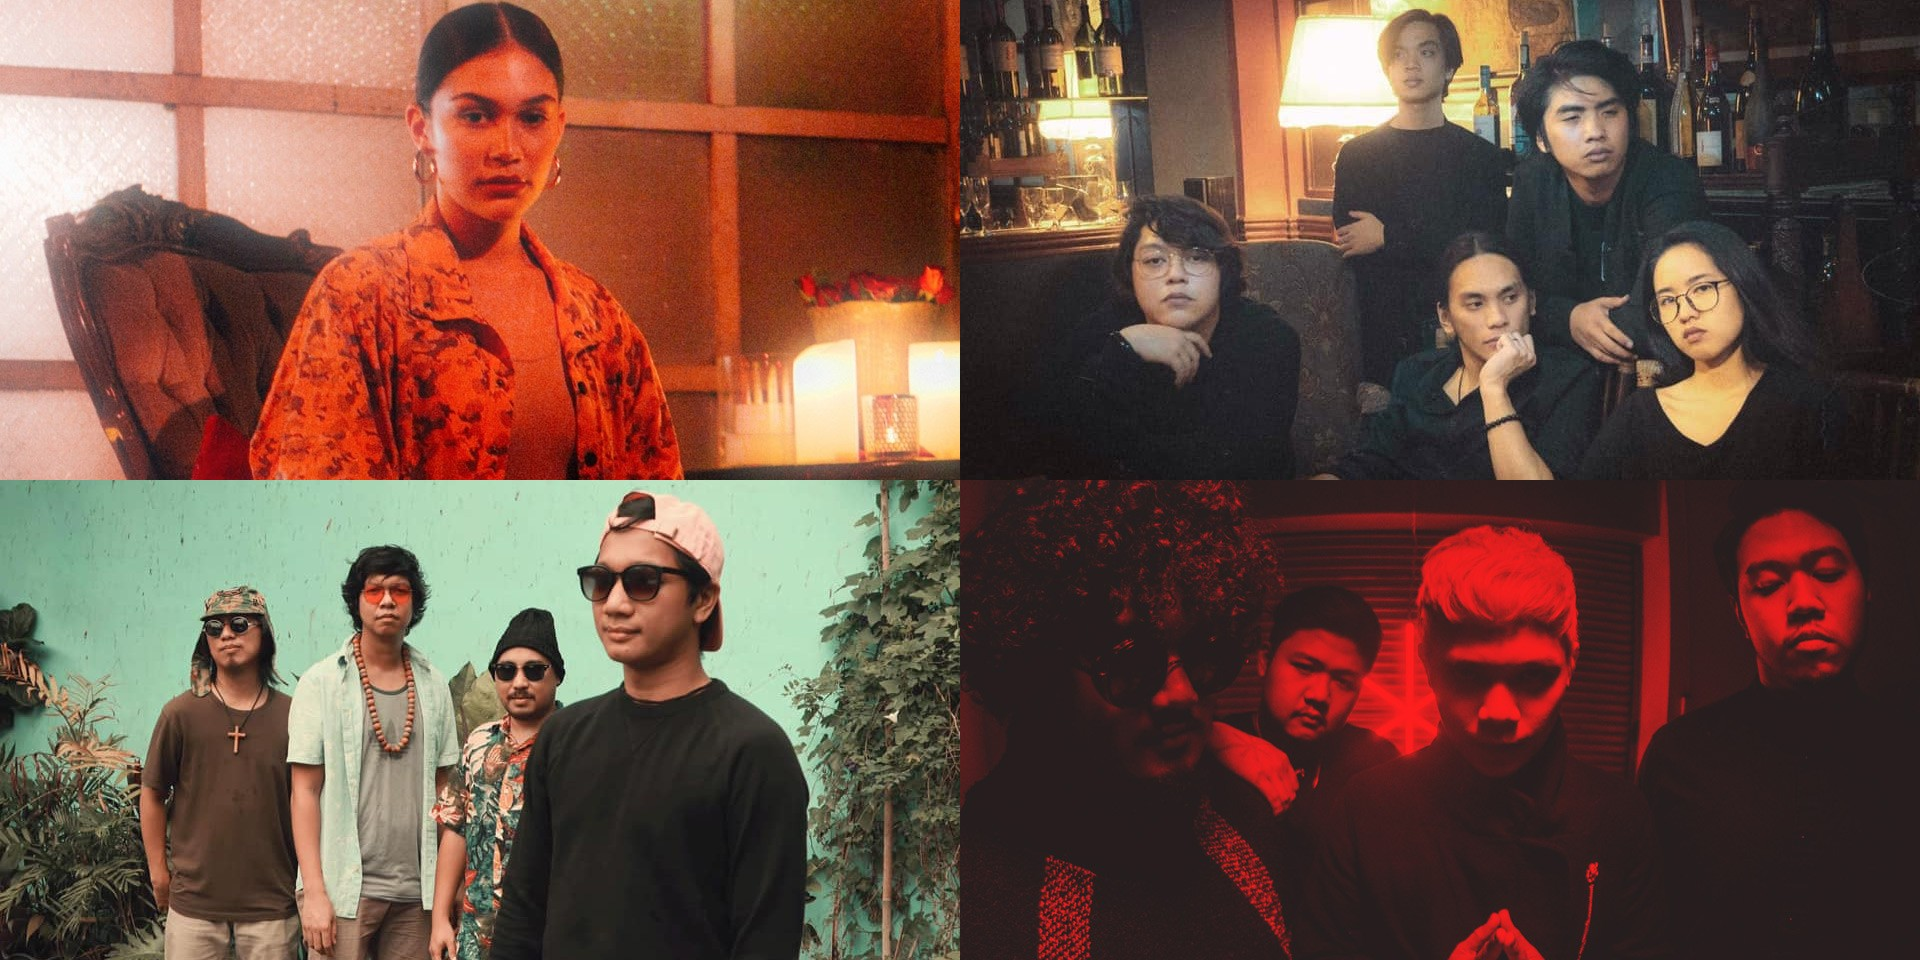 Jess Connelly, Carousel Casualties, Giniling Festival, St. Wolf, and more release new music